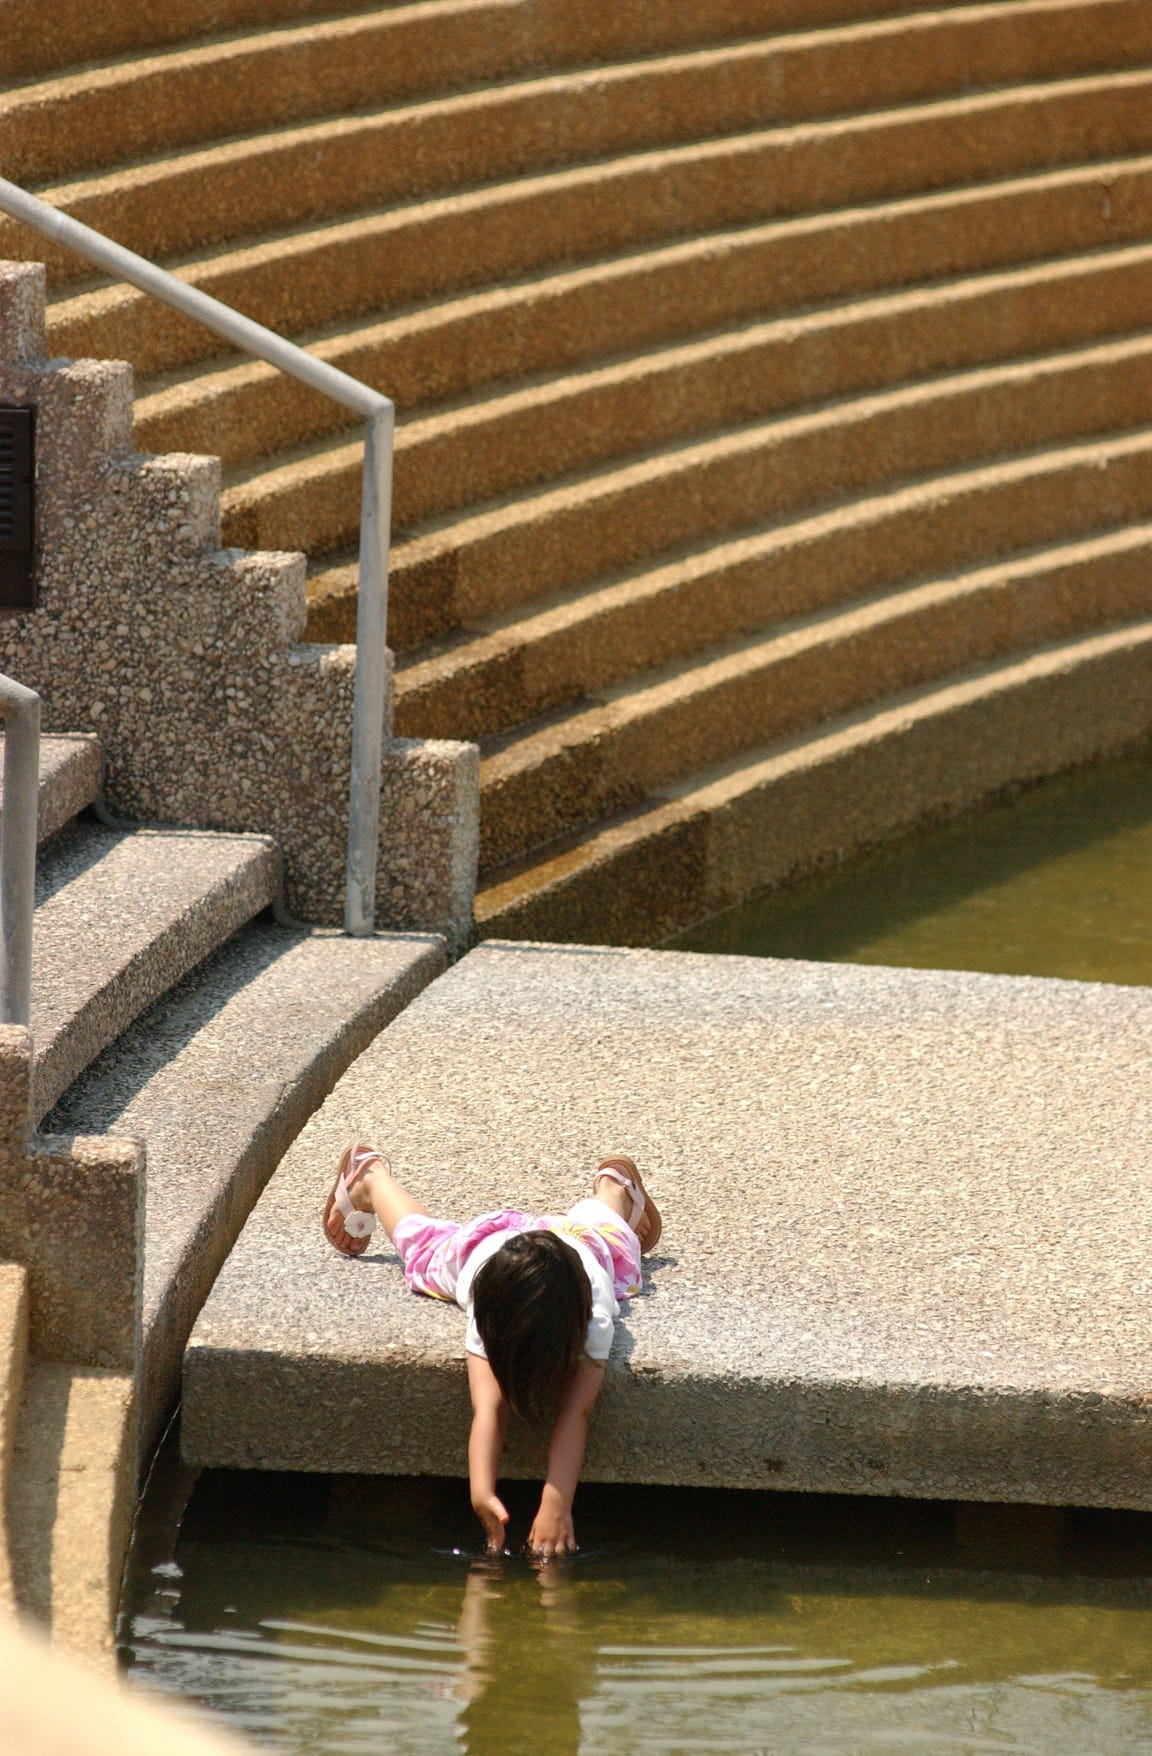 Frances Lee, 3, explores the Corpus Christi Watergarden in front of the Art Museum of South Texas June 21, 2005.